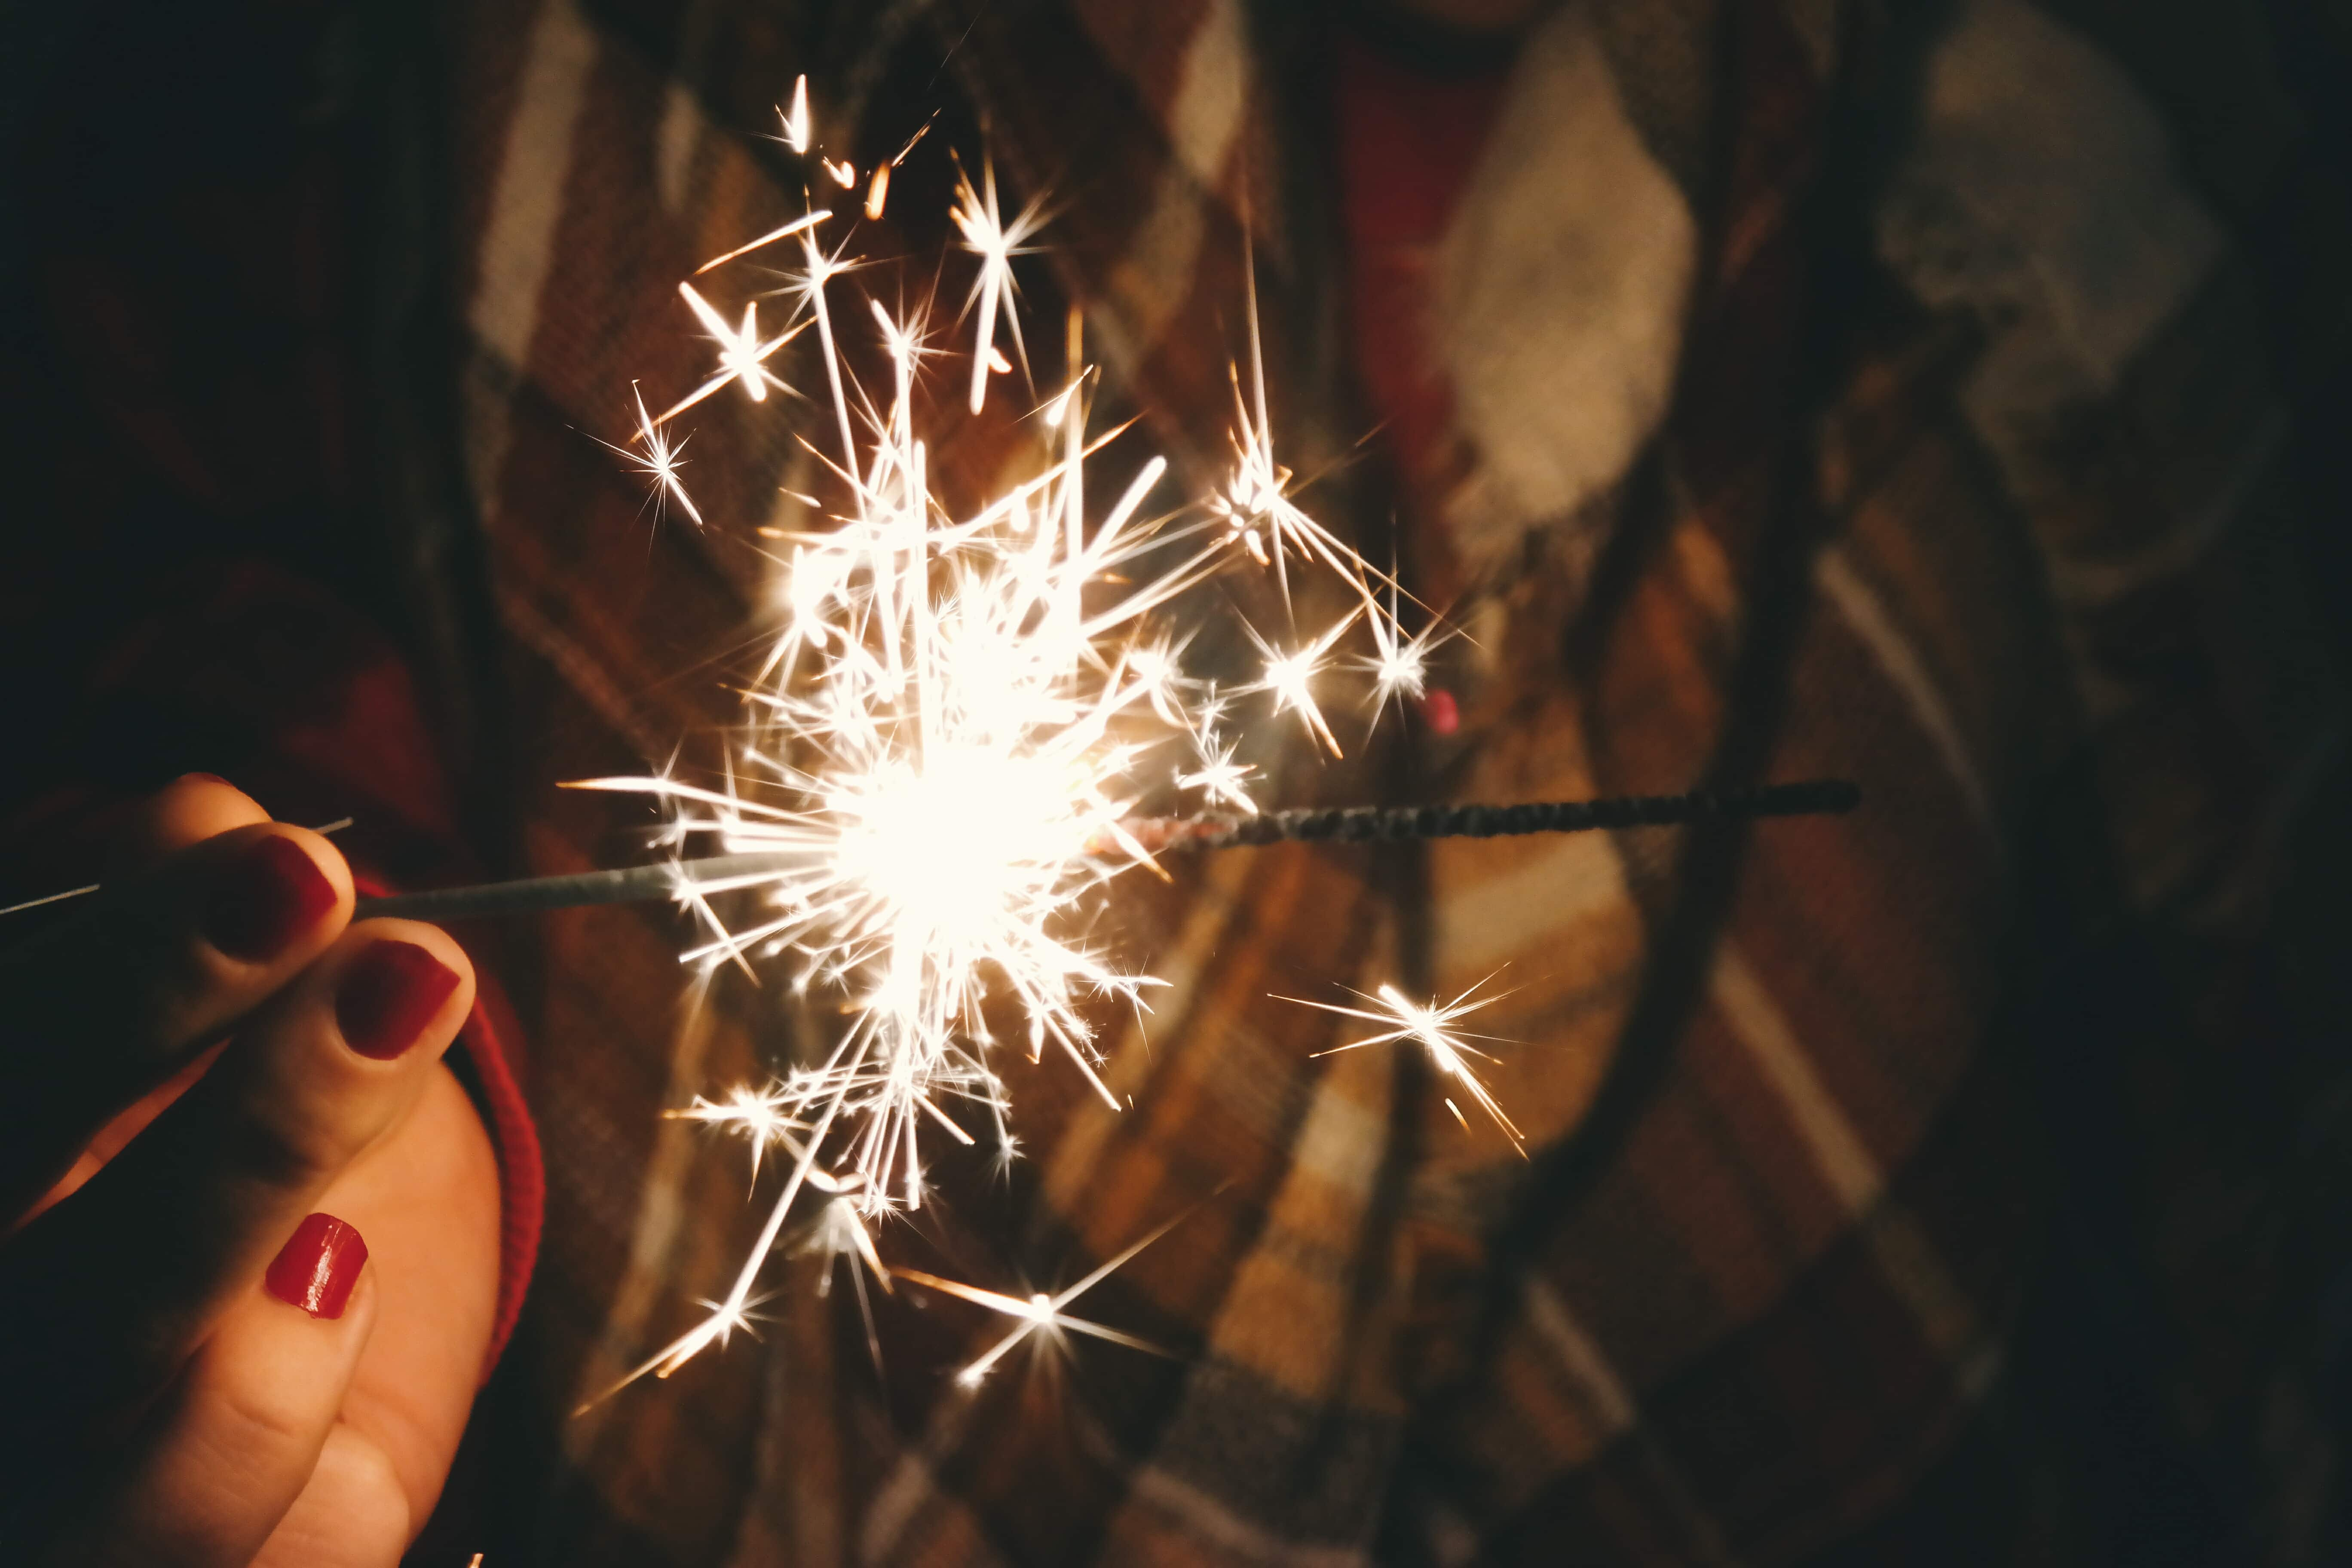 sparklers can cause injuries